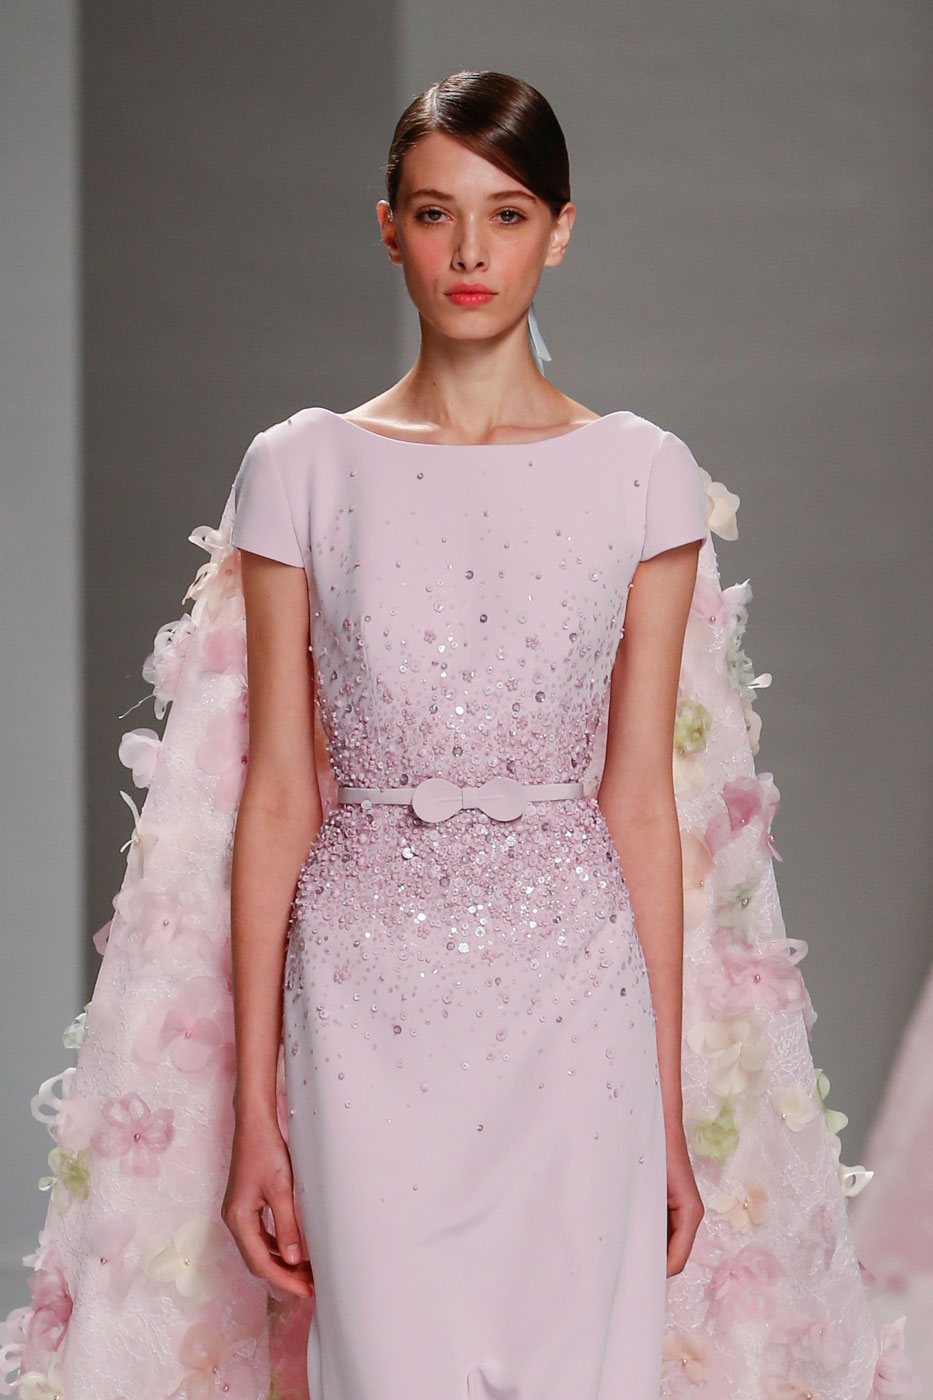 Georges-Hobeika-fashion-runway-show-haute-couture-paris-spring-2015-the-impression-82